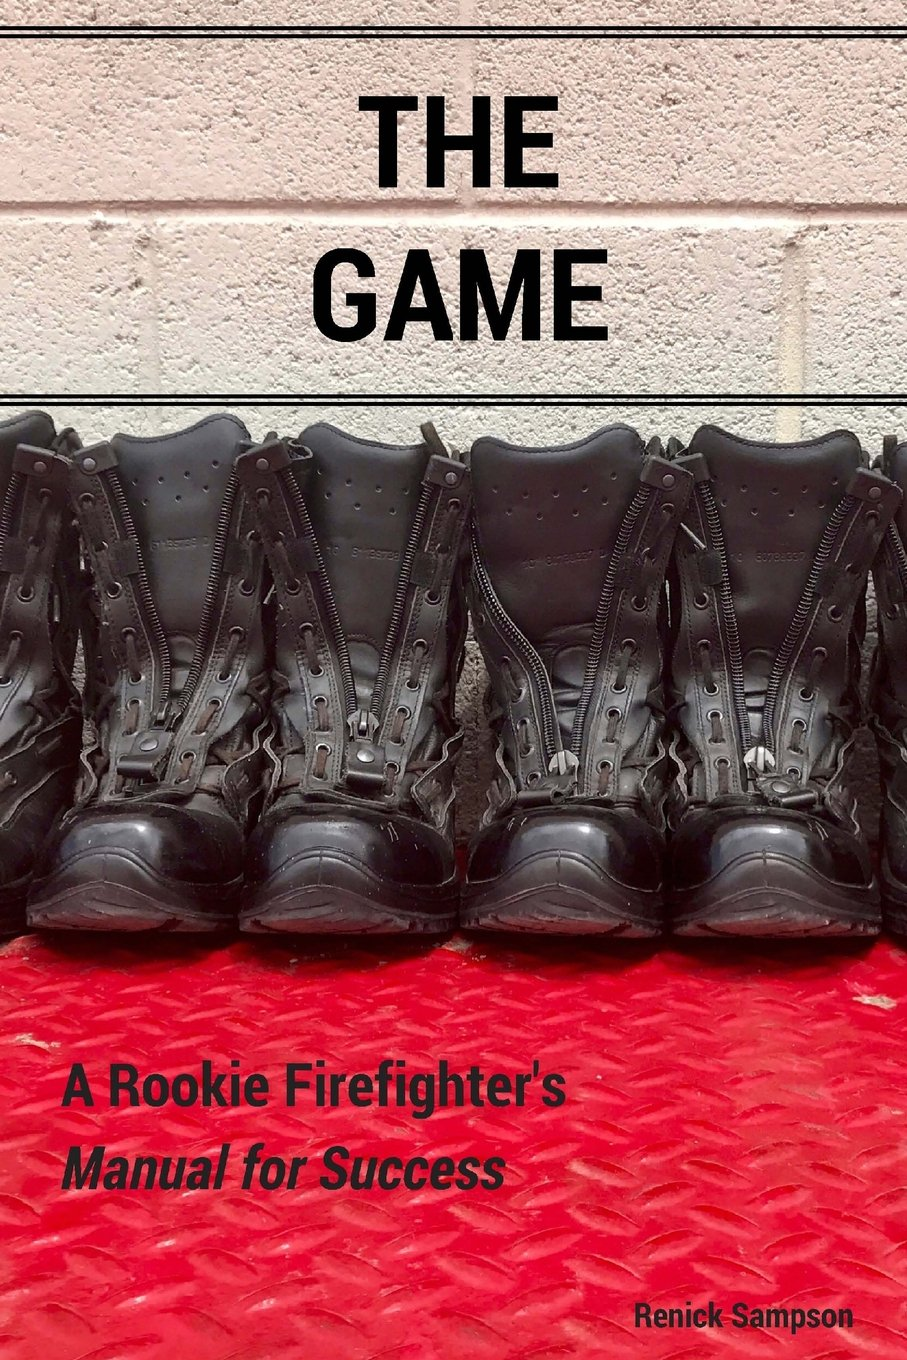 Amazon.com: The Game: A Rookie Firefighter's Manual For Success  (9780692946862): Renick Sampson: Books